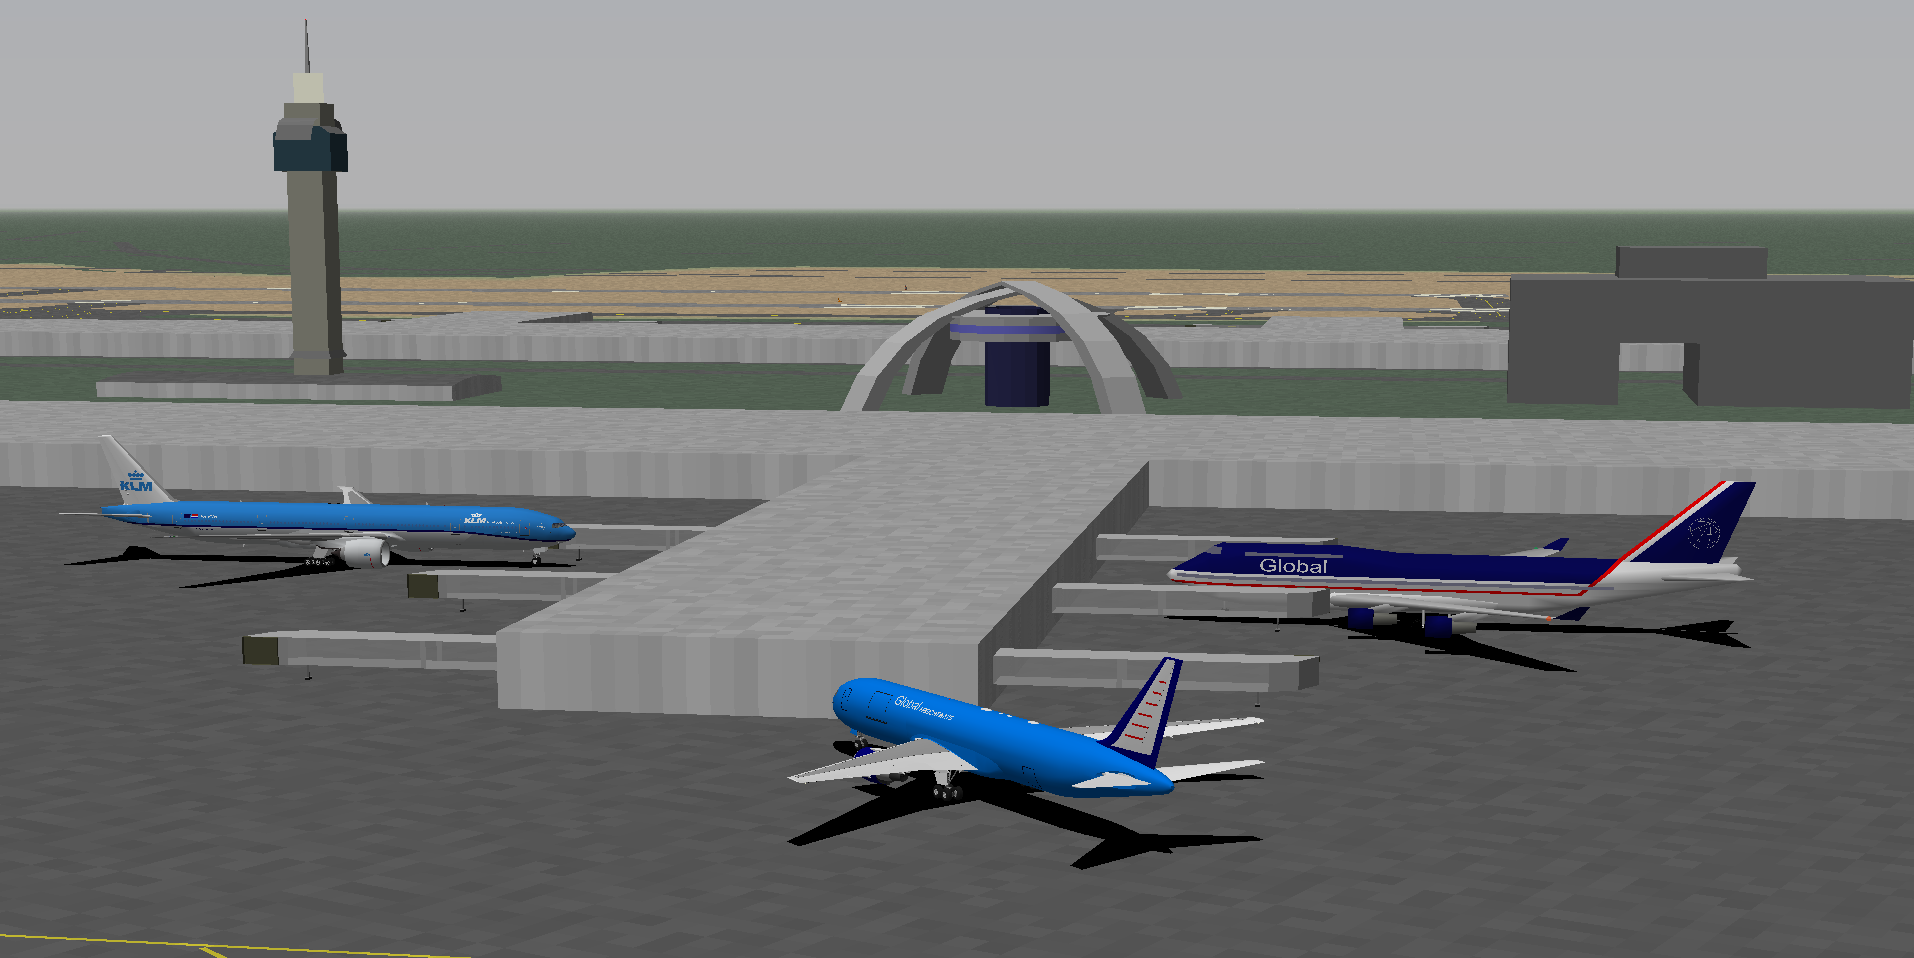 LAX_GBL_GFW_KLM.png